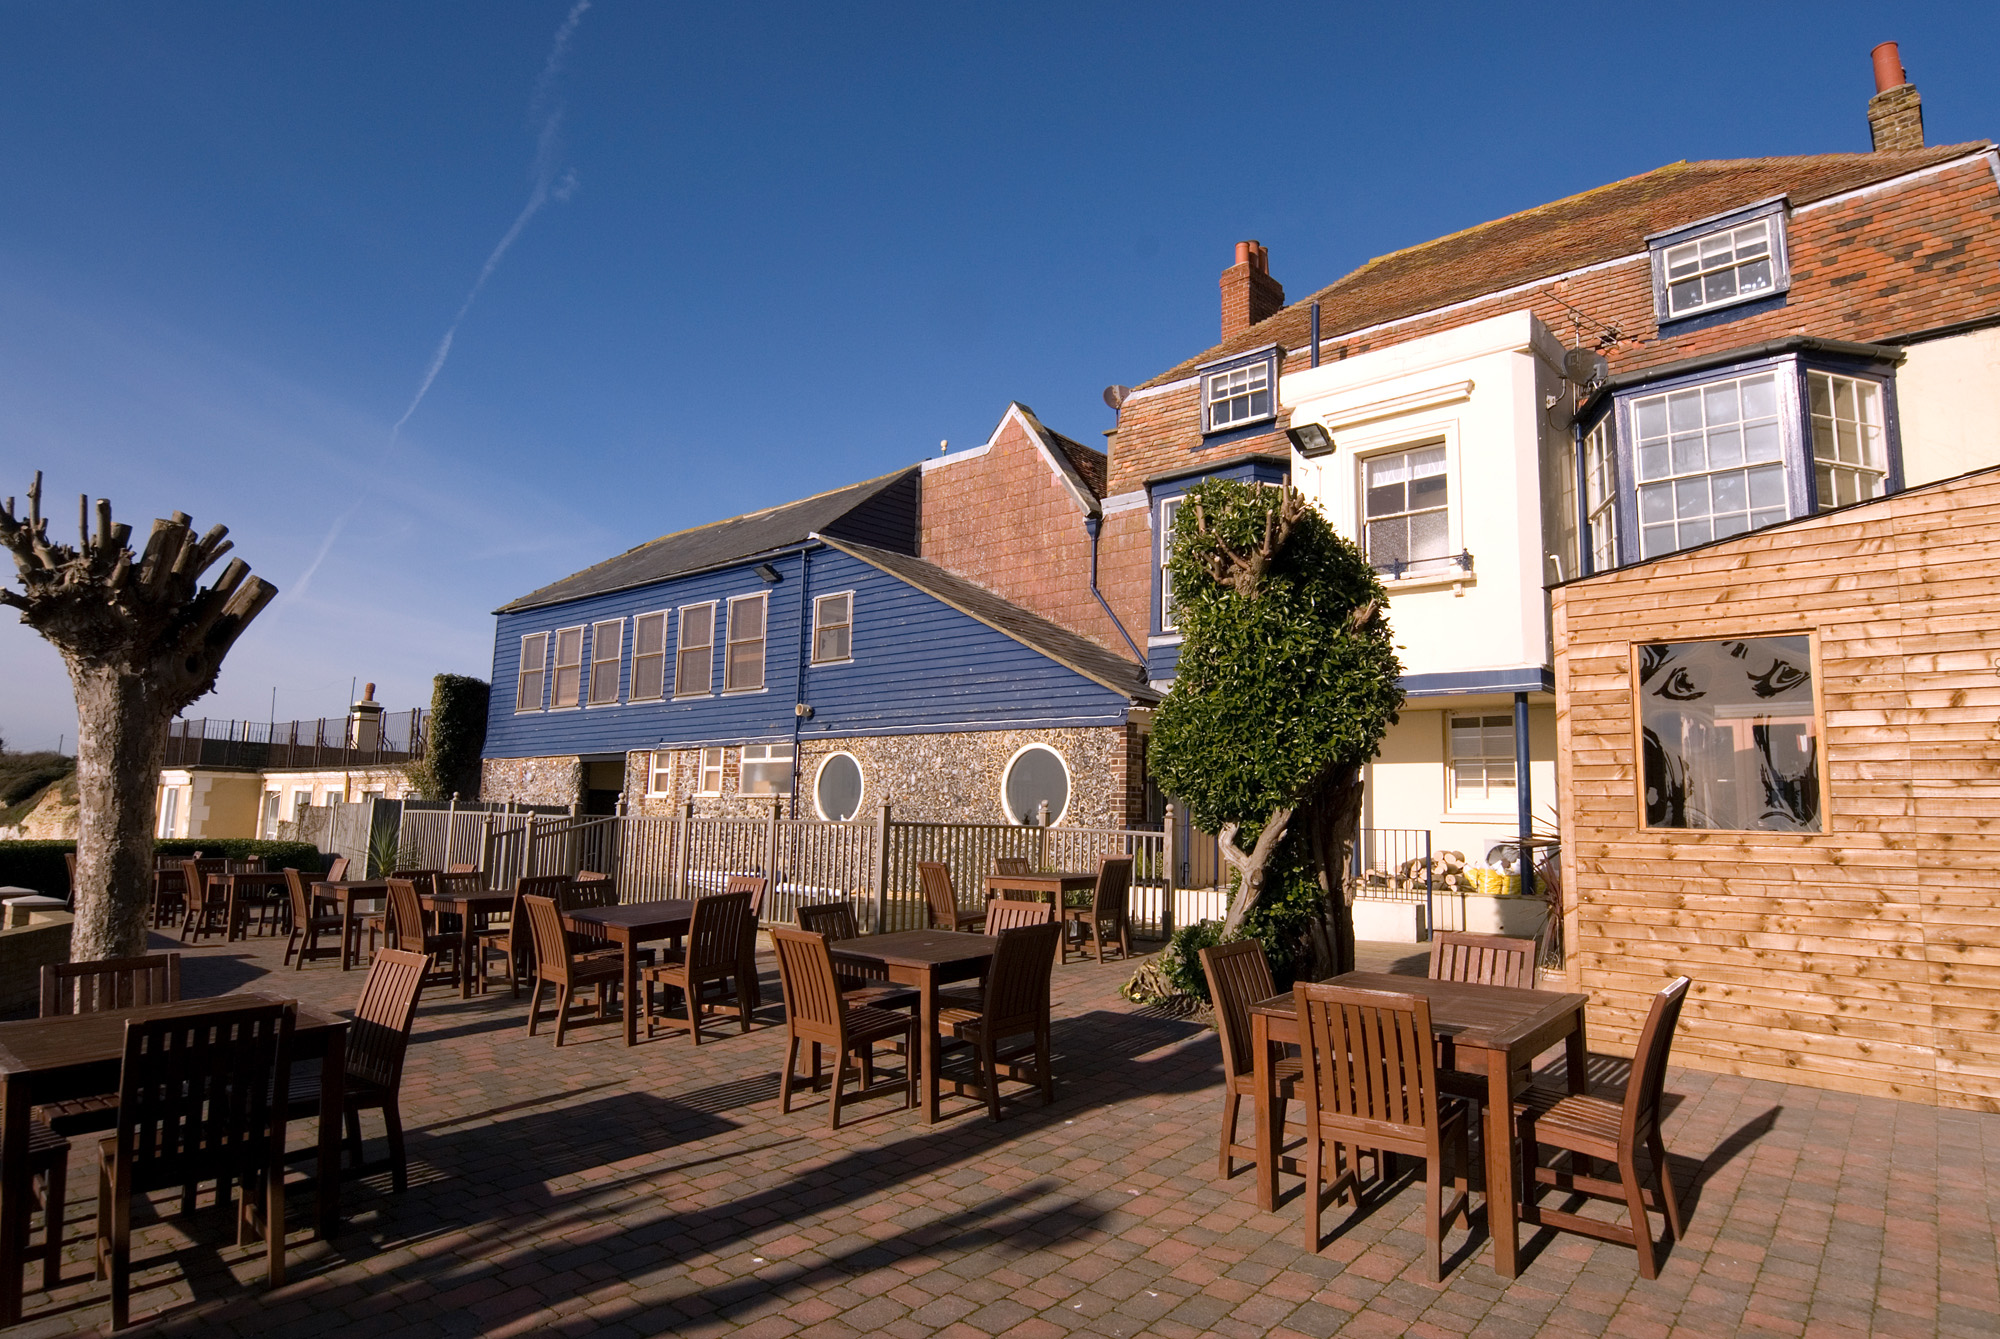 Contact the Belle Vue Tavern Pegwell Bay